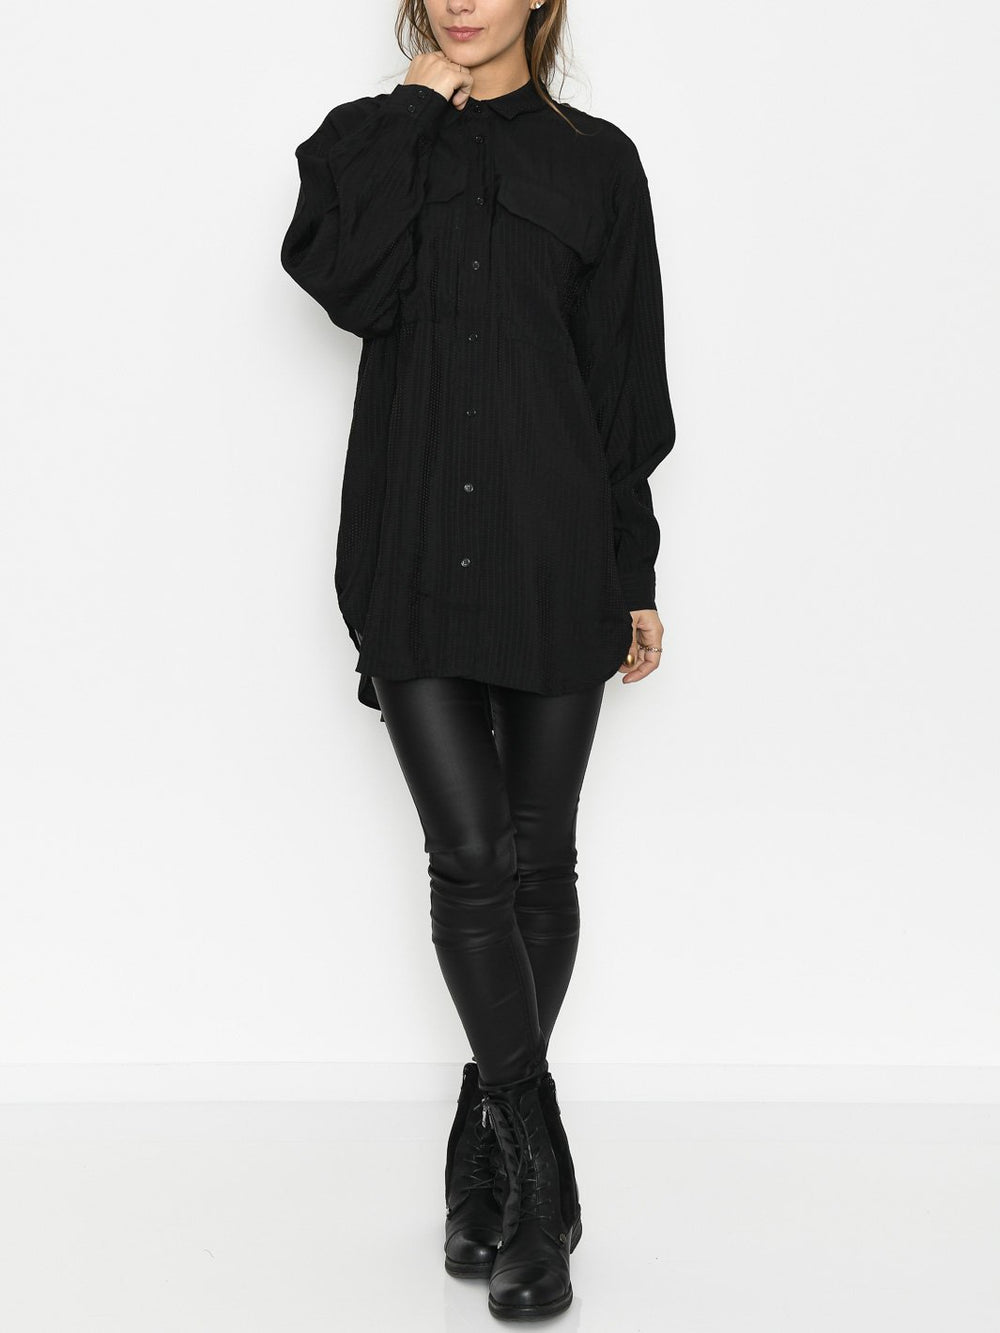 Kaffe KAedmonda shirt black deep - Online-Mode